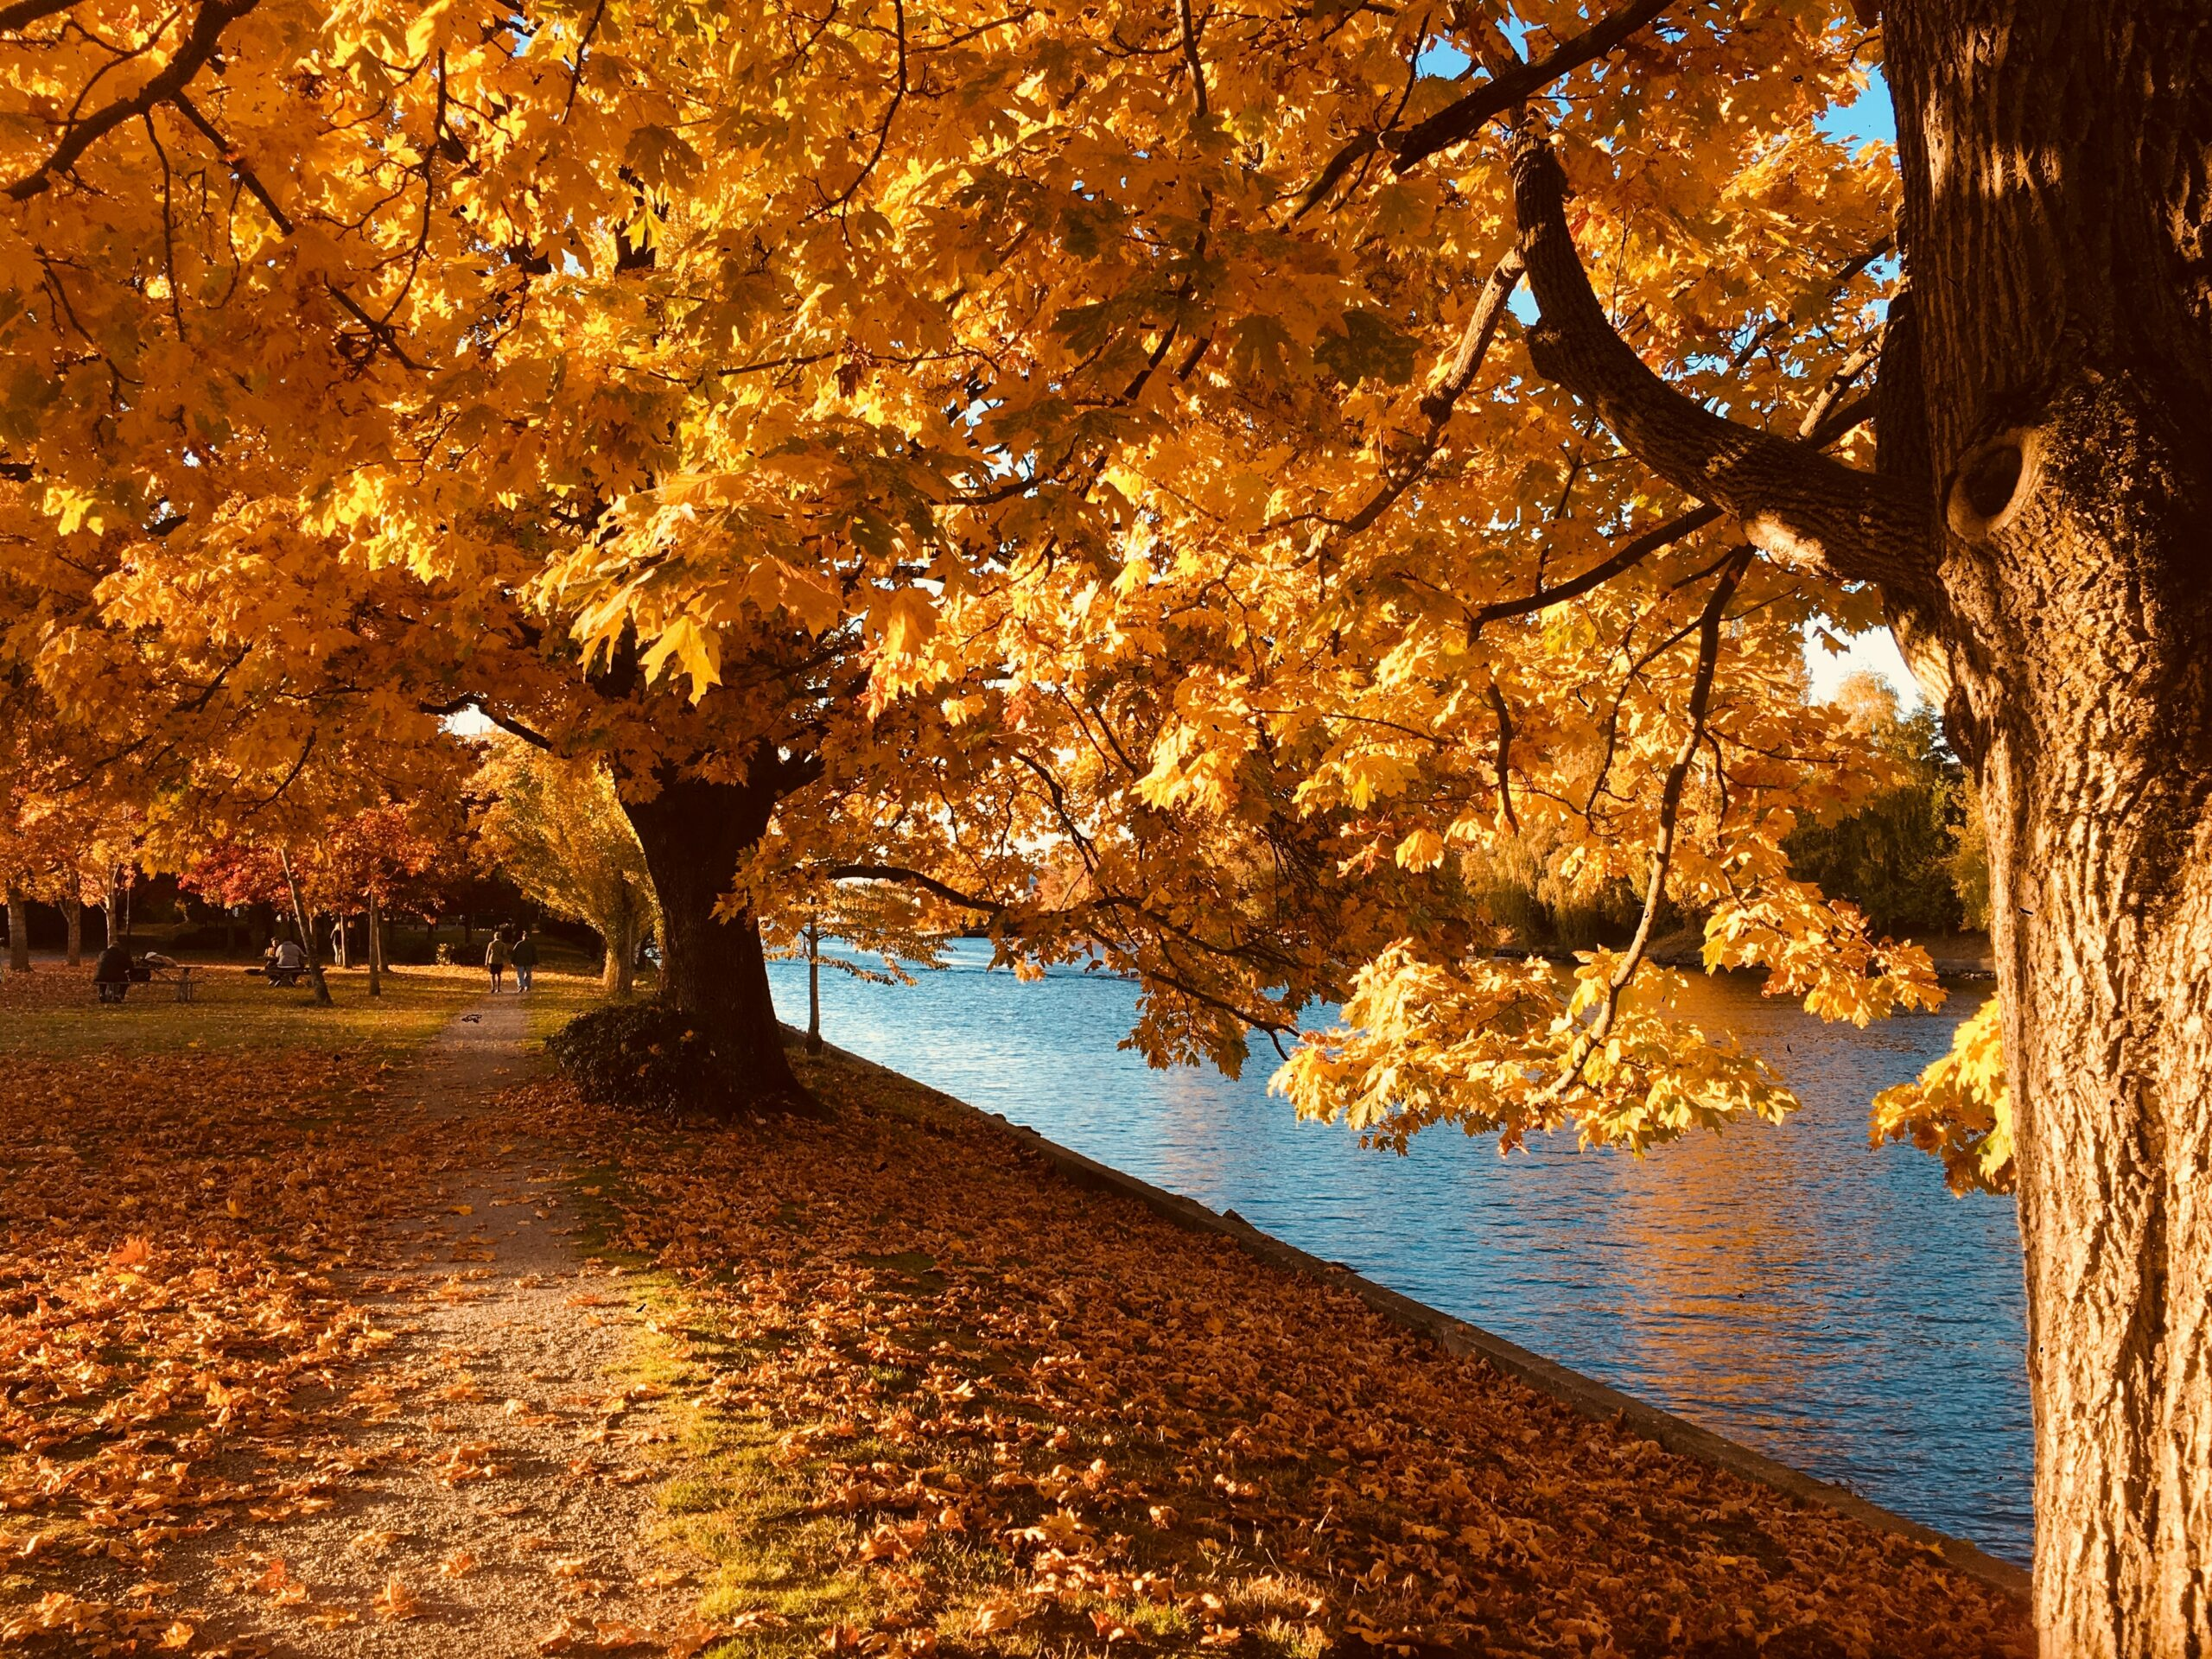 The first day of fall – Autumnal Equinox